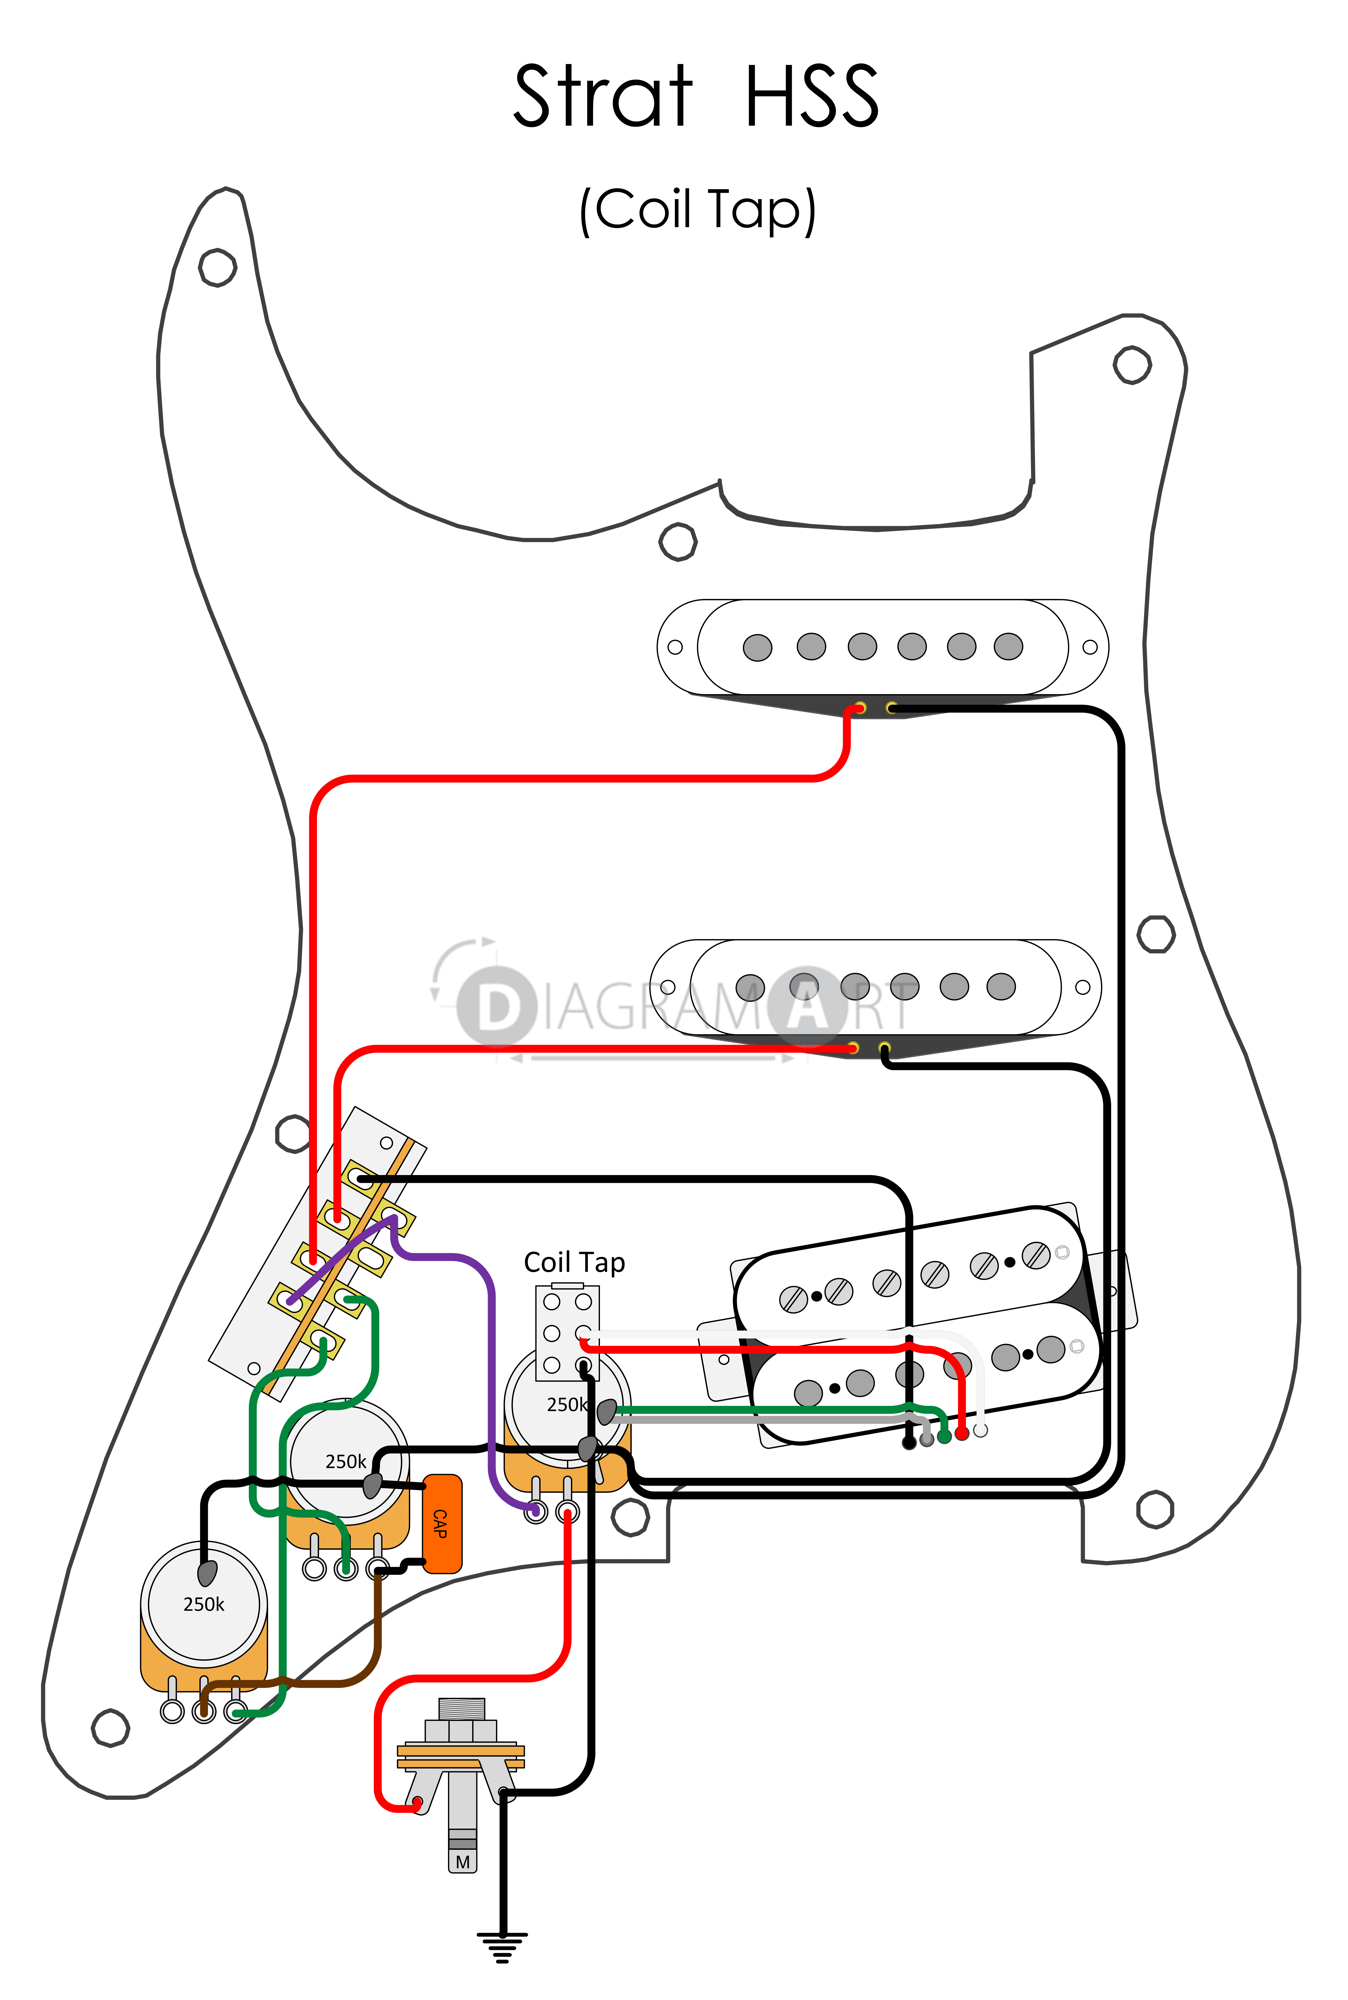 Electric guitar wiring strat hss coil tap electric circuit electric guitar wiring strat hss coil tap electric circuit cheapraybanclubmaster Gallery